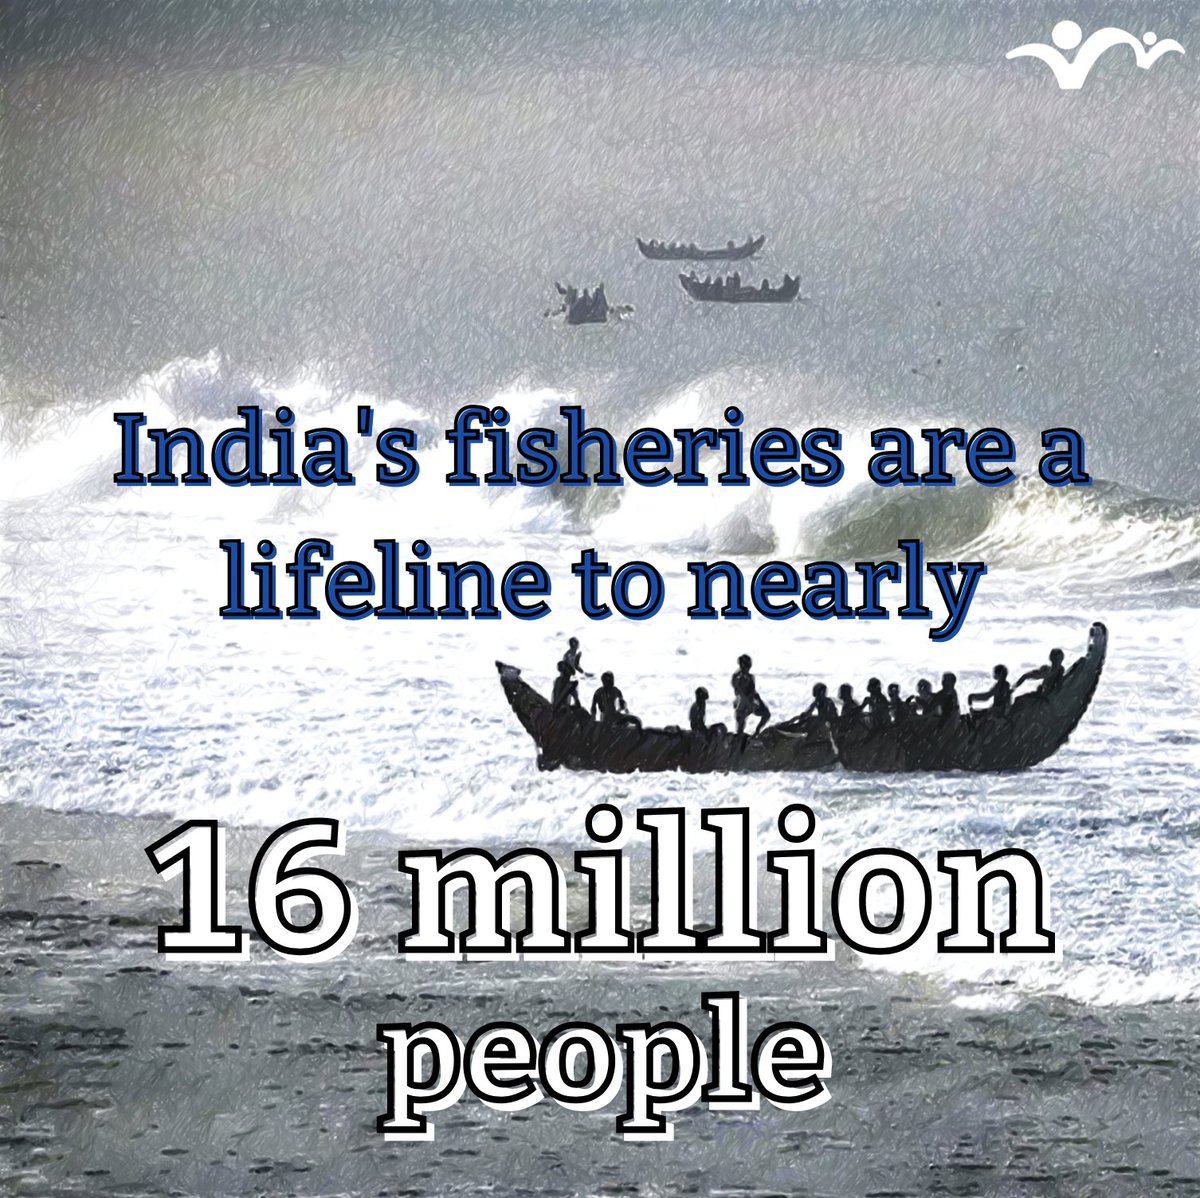 This week was #WorldFisheriesDay, we pay tribute to T. Peter of National Fishworkers Forum, who advocated for decades for the rights of fisher communities in India.